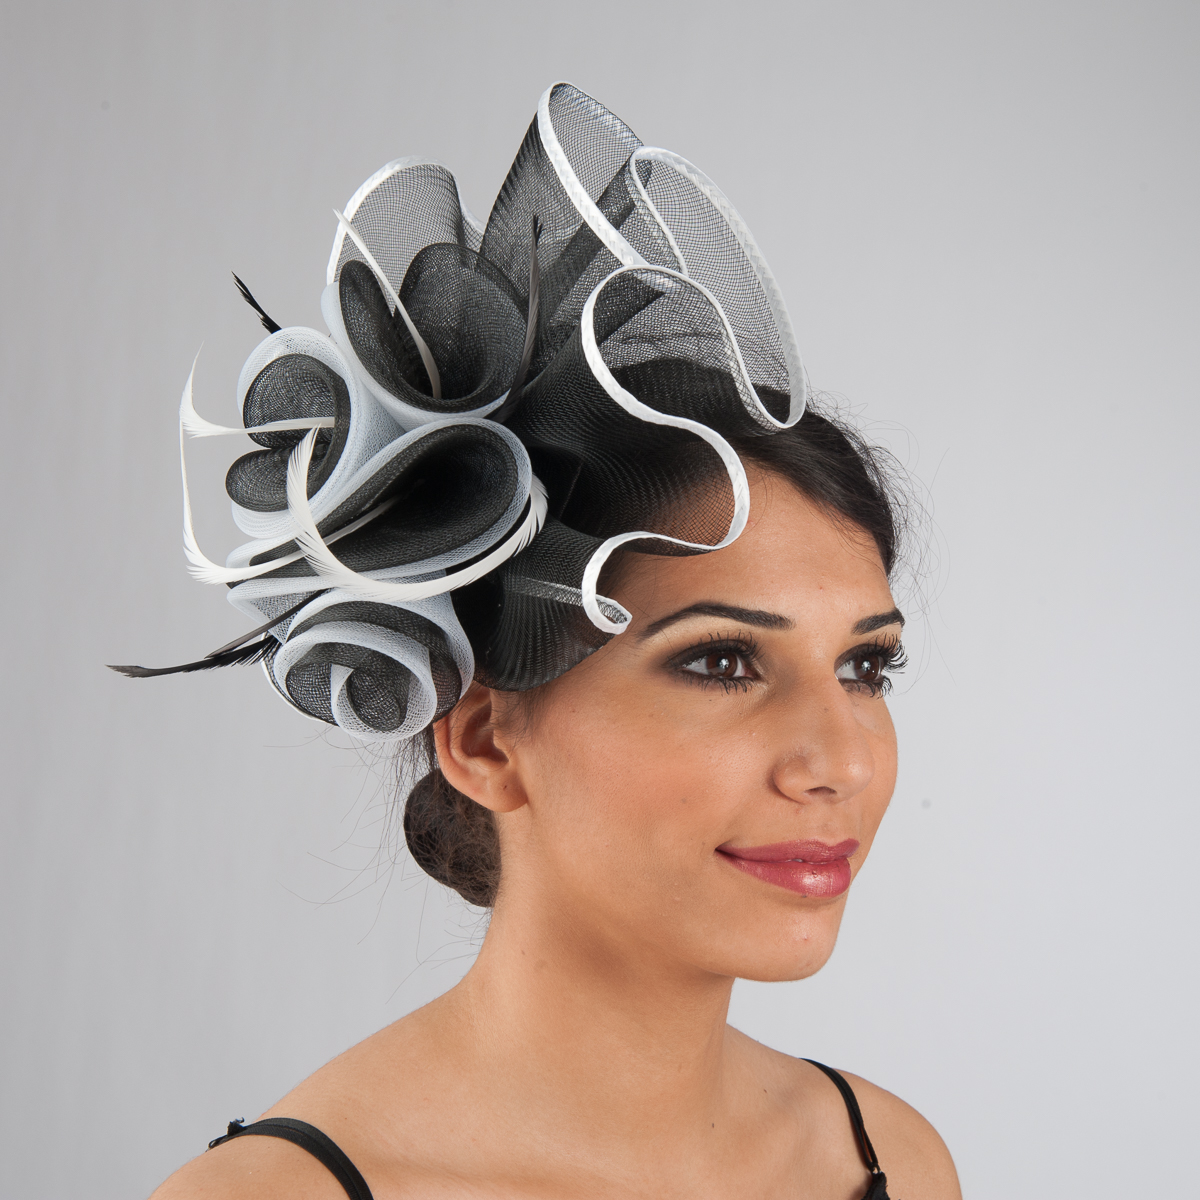 Black-White Crinoline Comb Fascinator Cocktail Hats-5757C-BK.WT- Sun Yorkos   206ccf79a5e